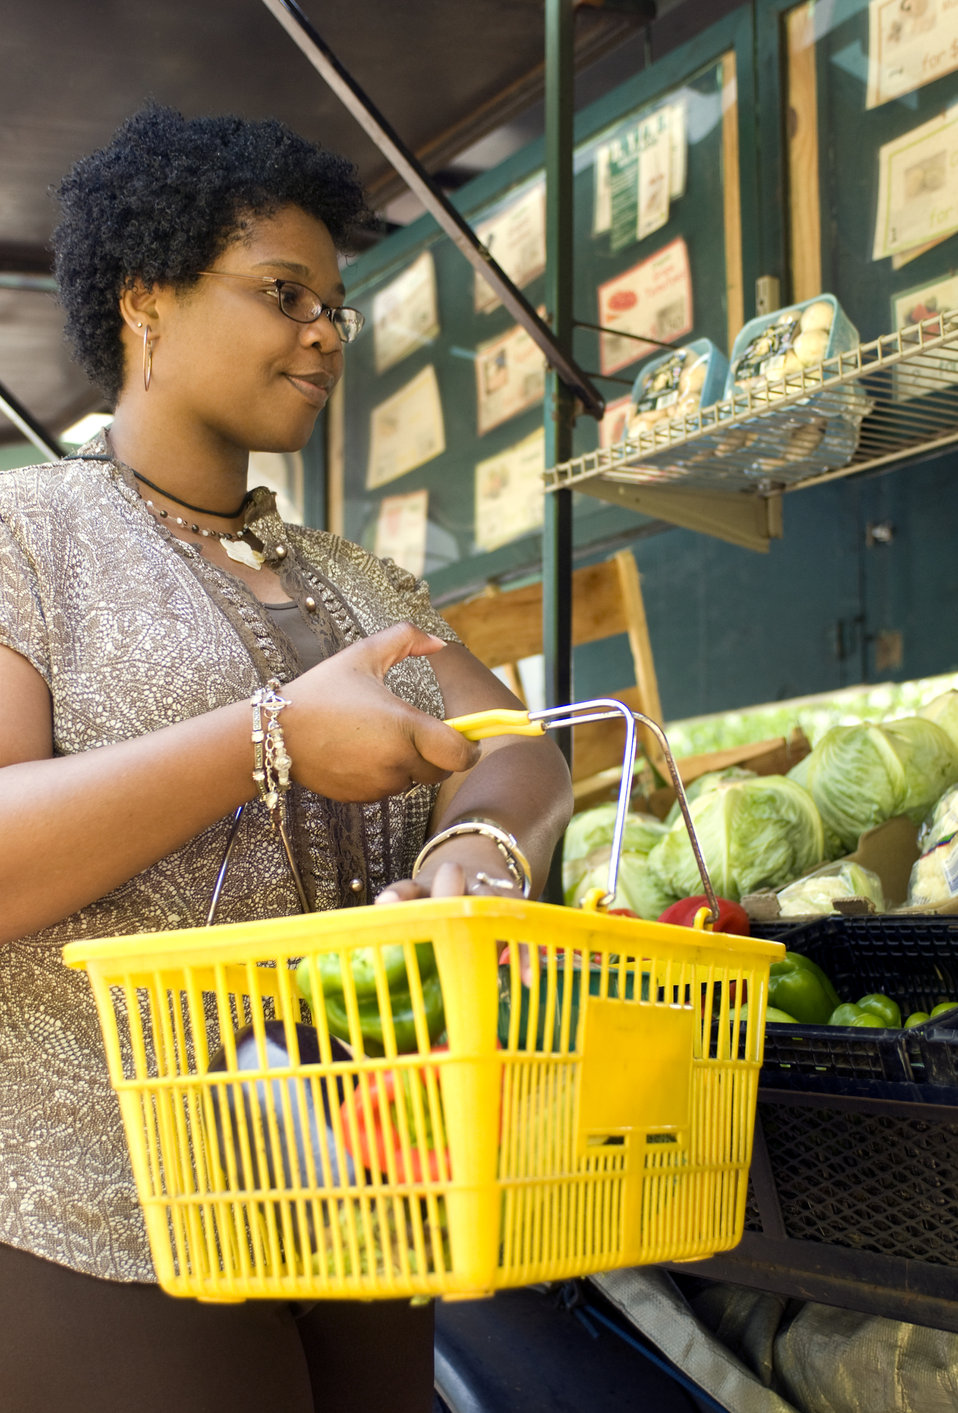 This photograph depicts a woman shopping at a mobile produce market, making healthy food choices from an array of fresh fruits and vegetable